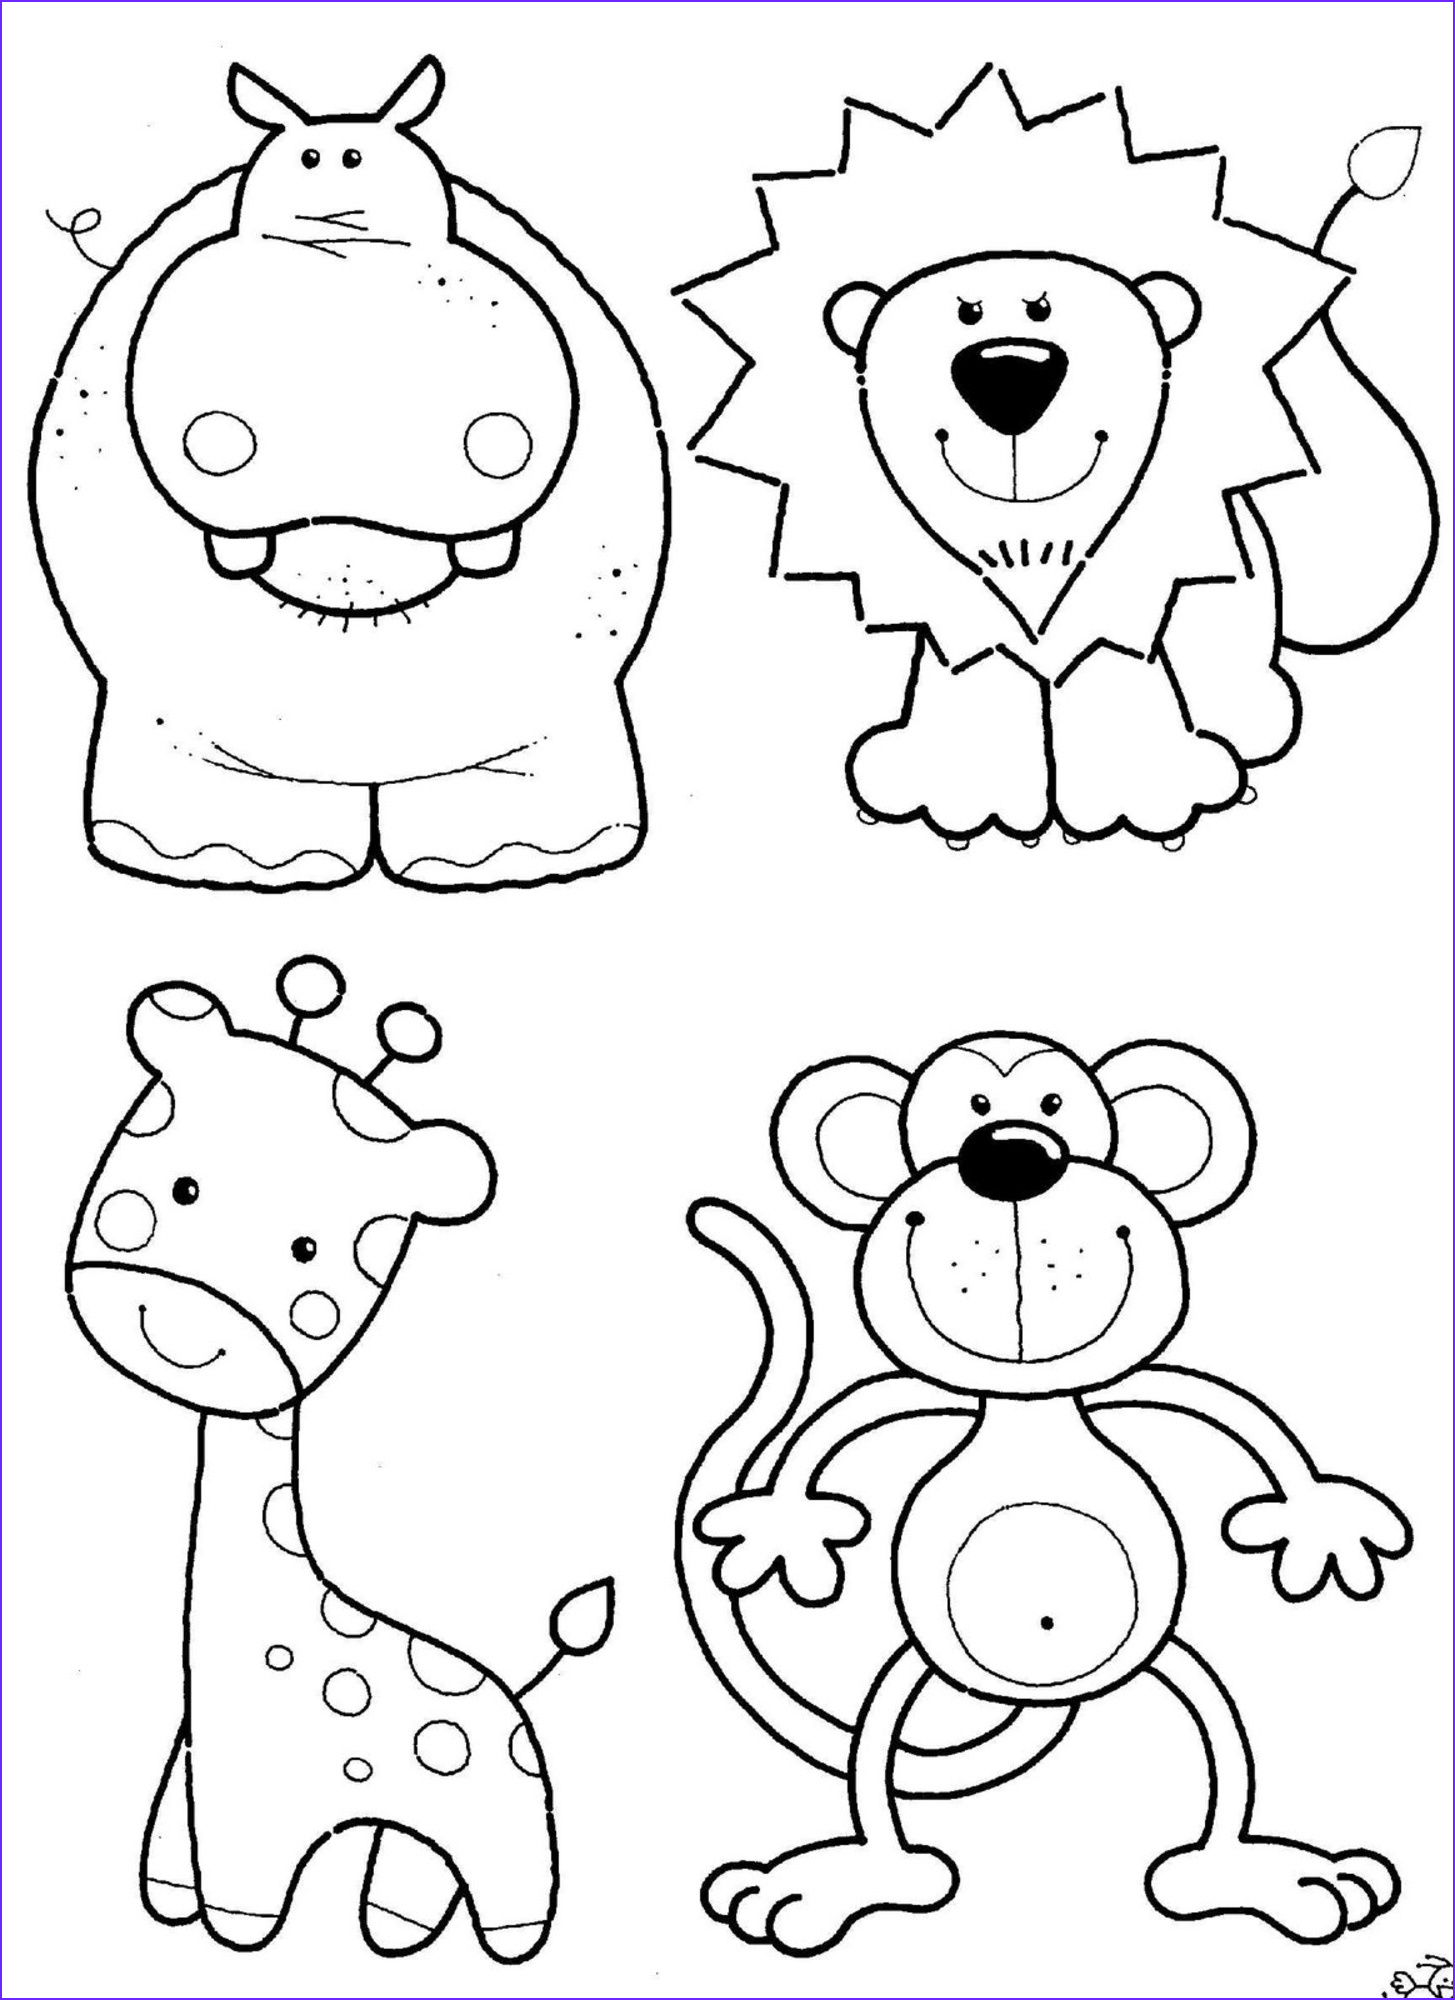 Coloring Pages Of Animals Unique Image Coloring Lab